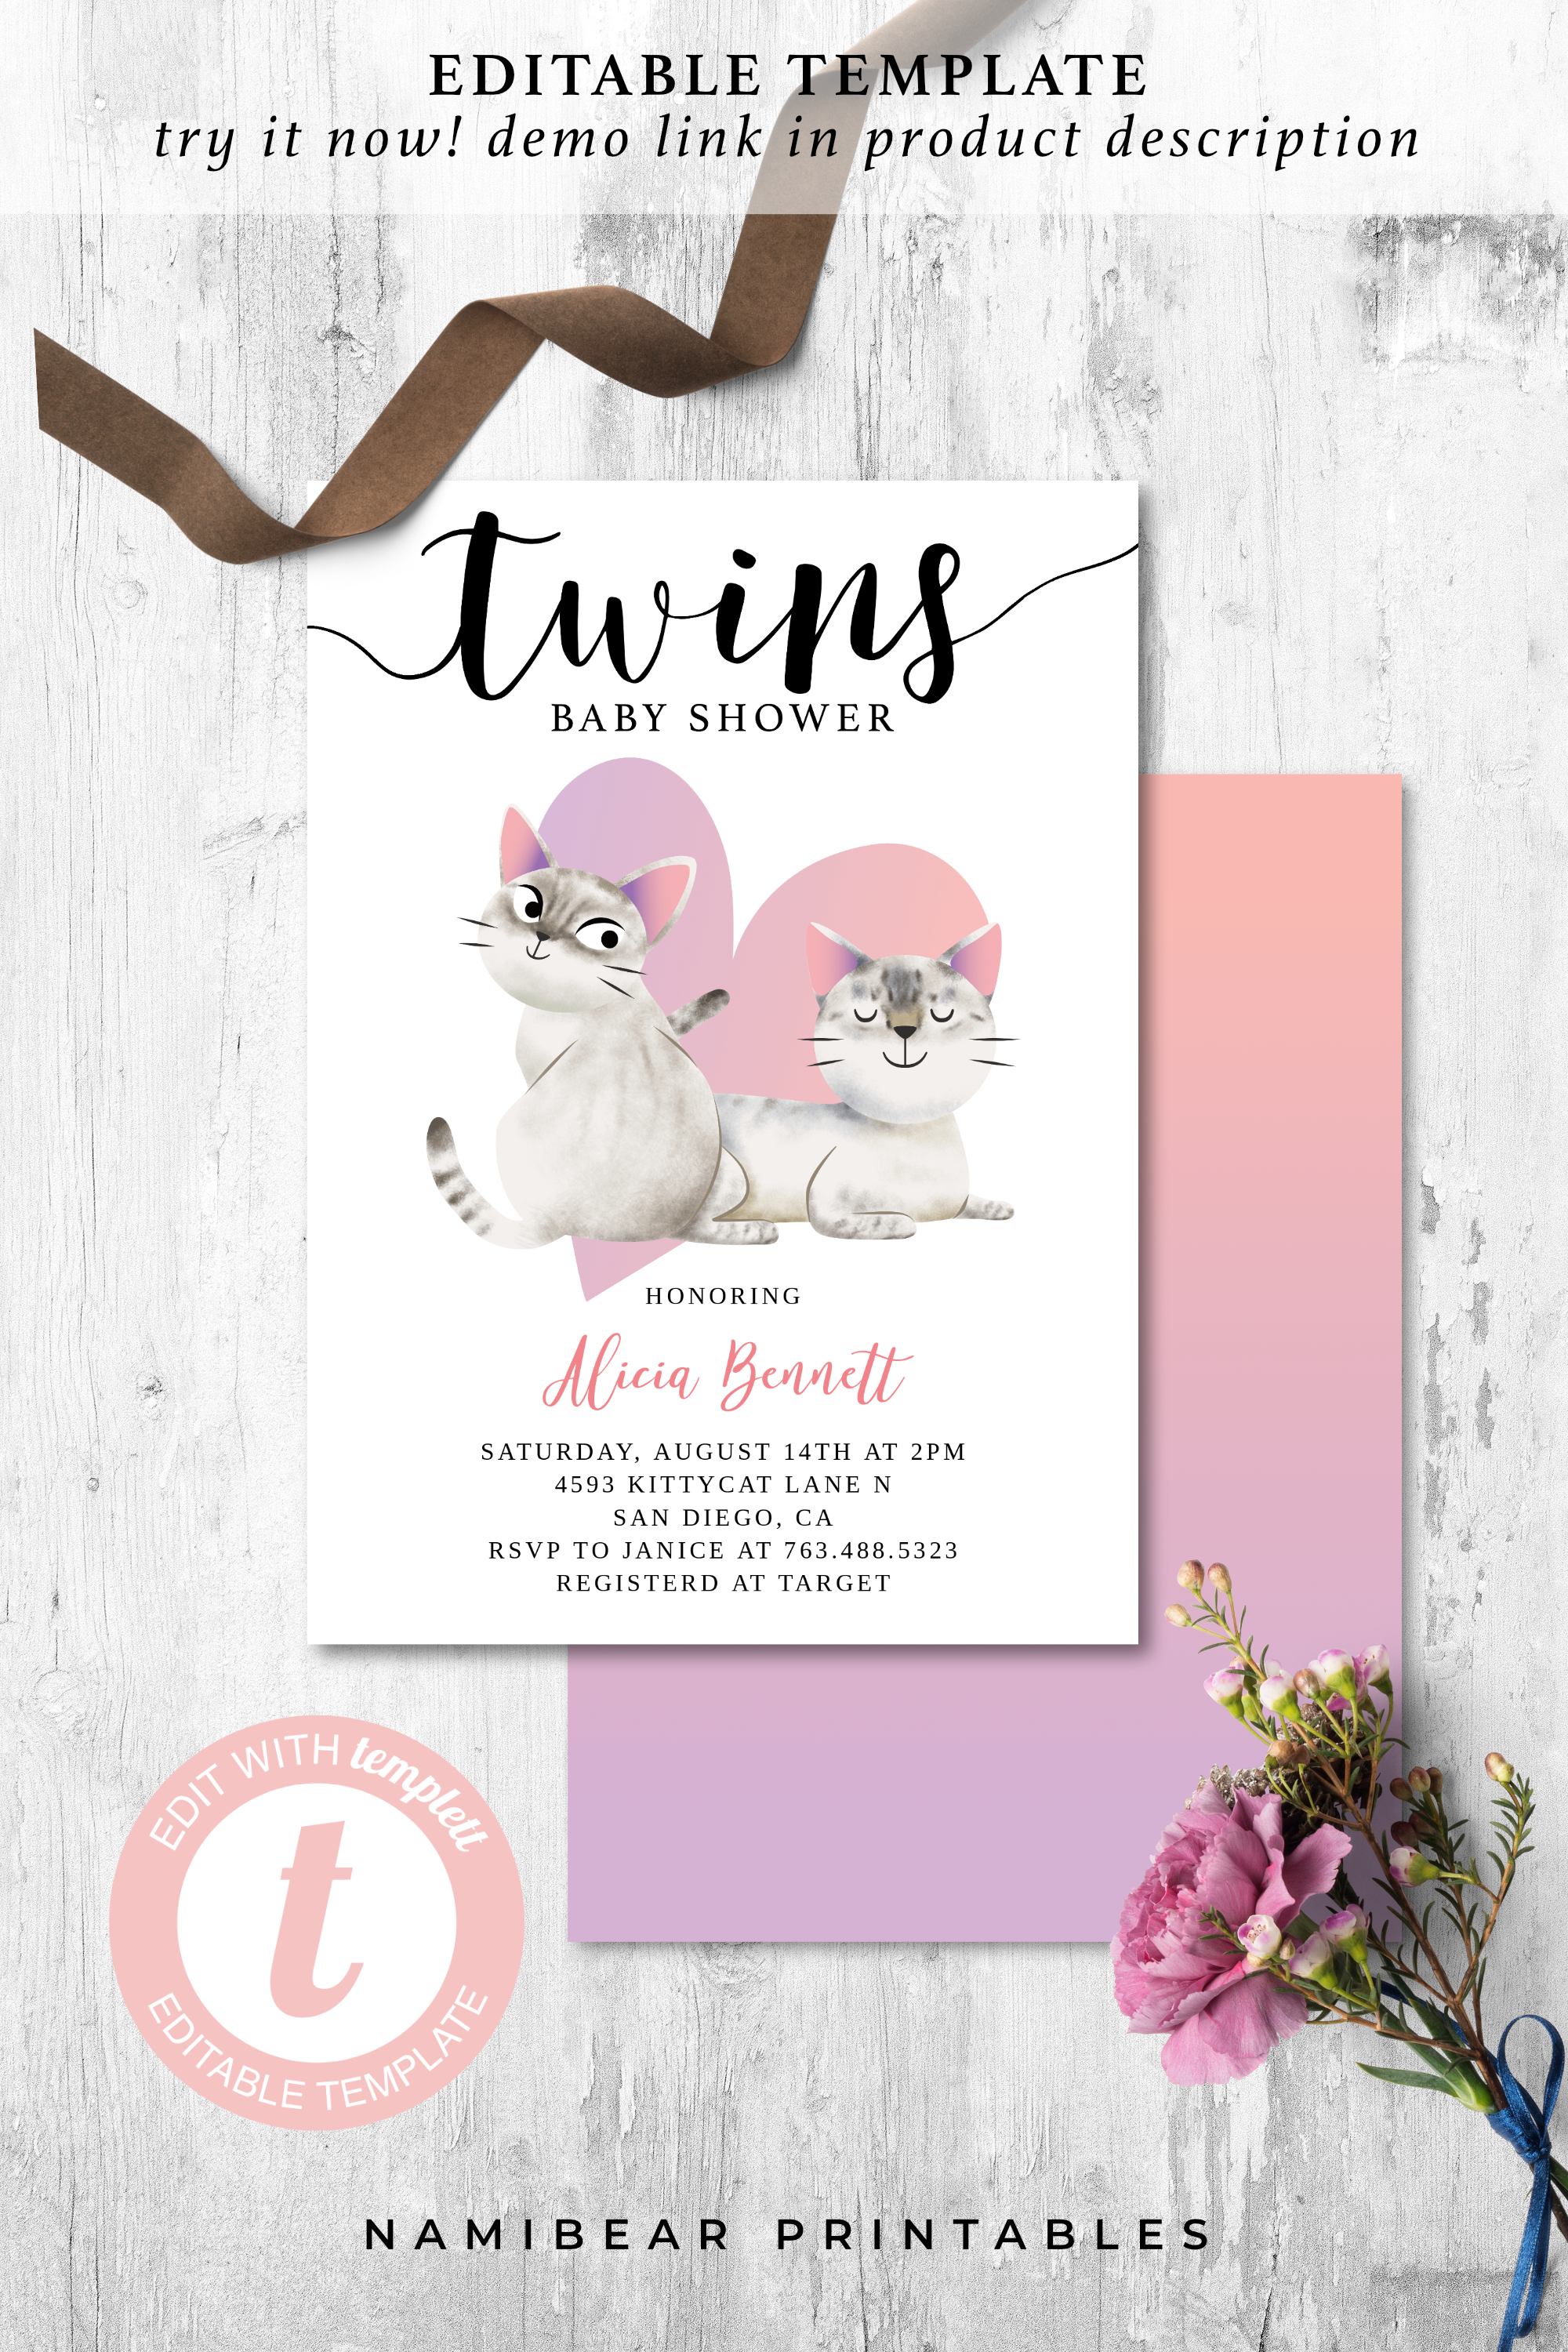 Printable Kitty Cat Theme Twins Baby Shower Editable Twin Girls Kitten Baby Shower Invite Instant Download Template Invitation Card In 2020 Twin Girls Baby Shower Invitations Baby Shower Invites For Girl